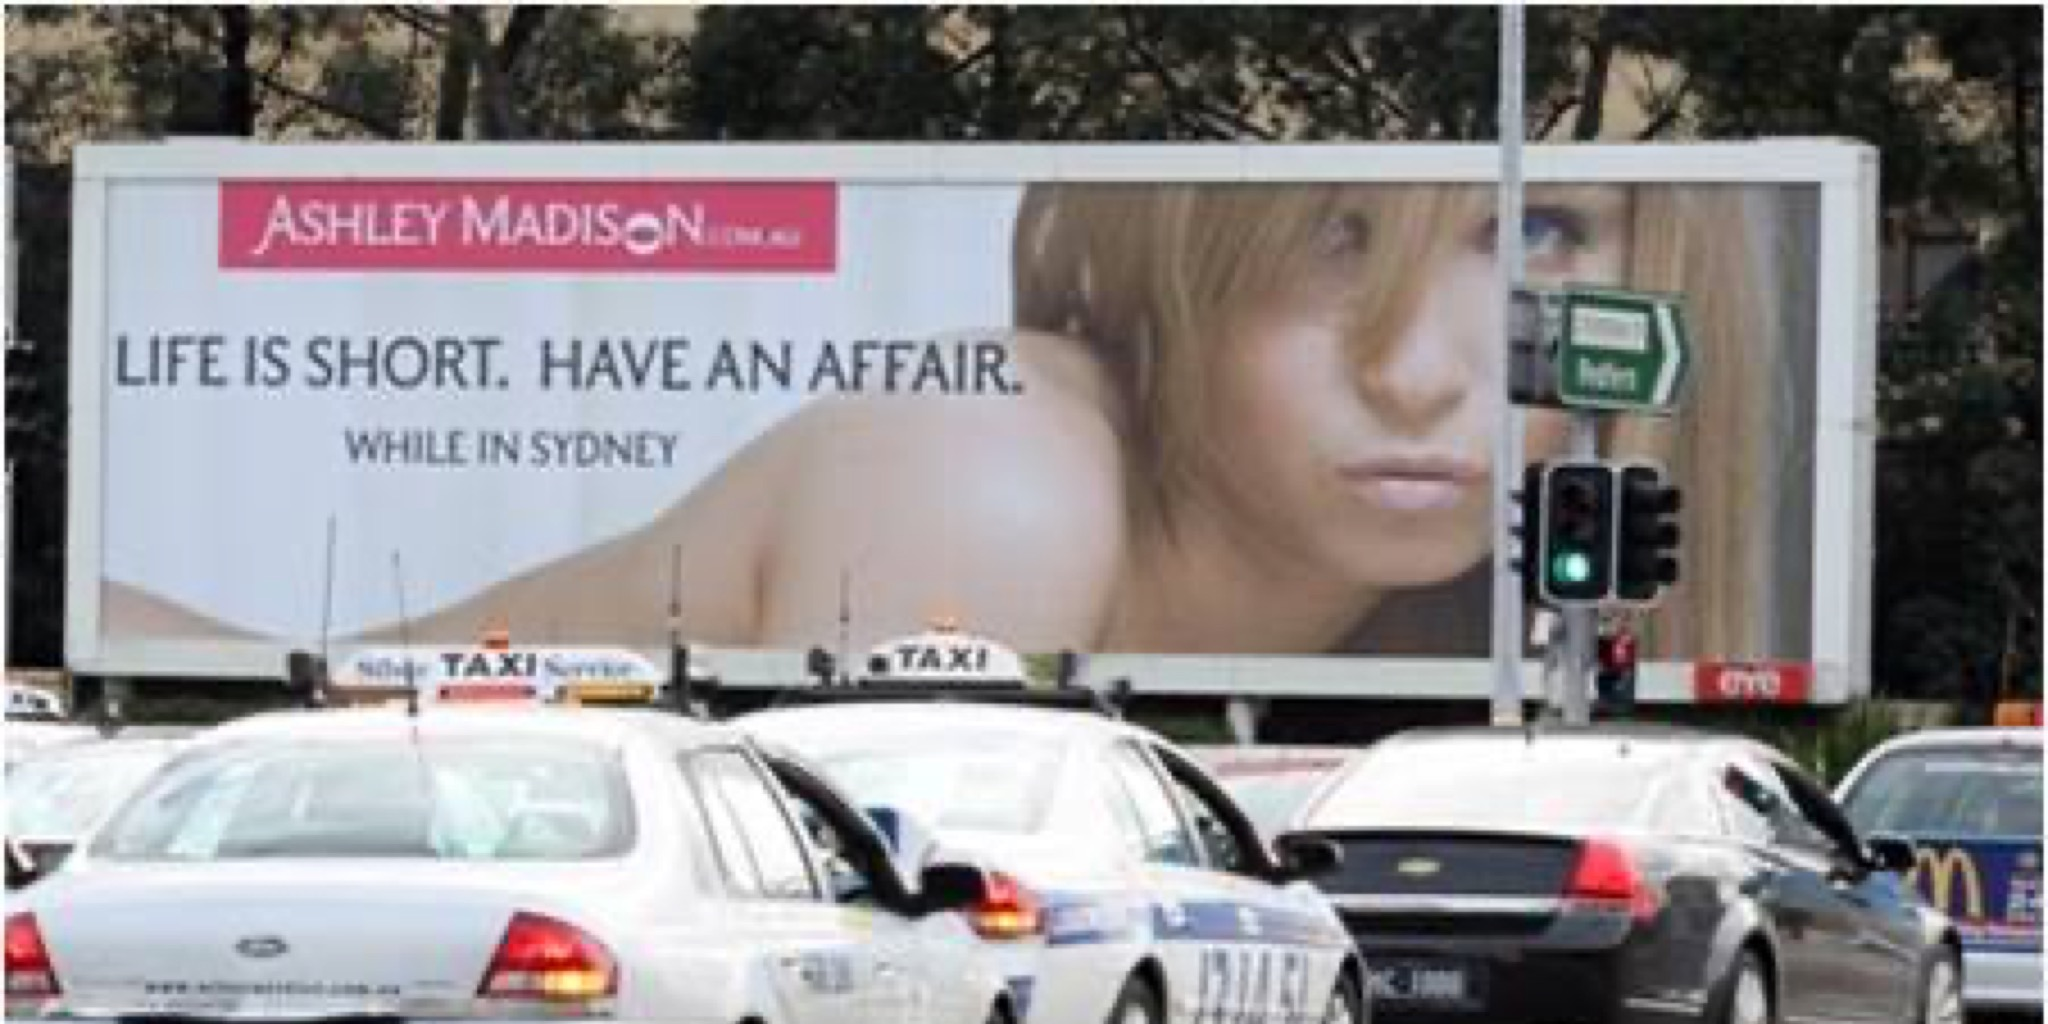 Ashley_Madison_have_an_affair_billboard_Sydney_fp_image.jpg